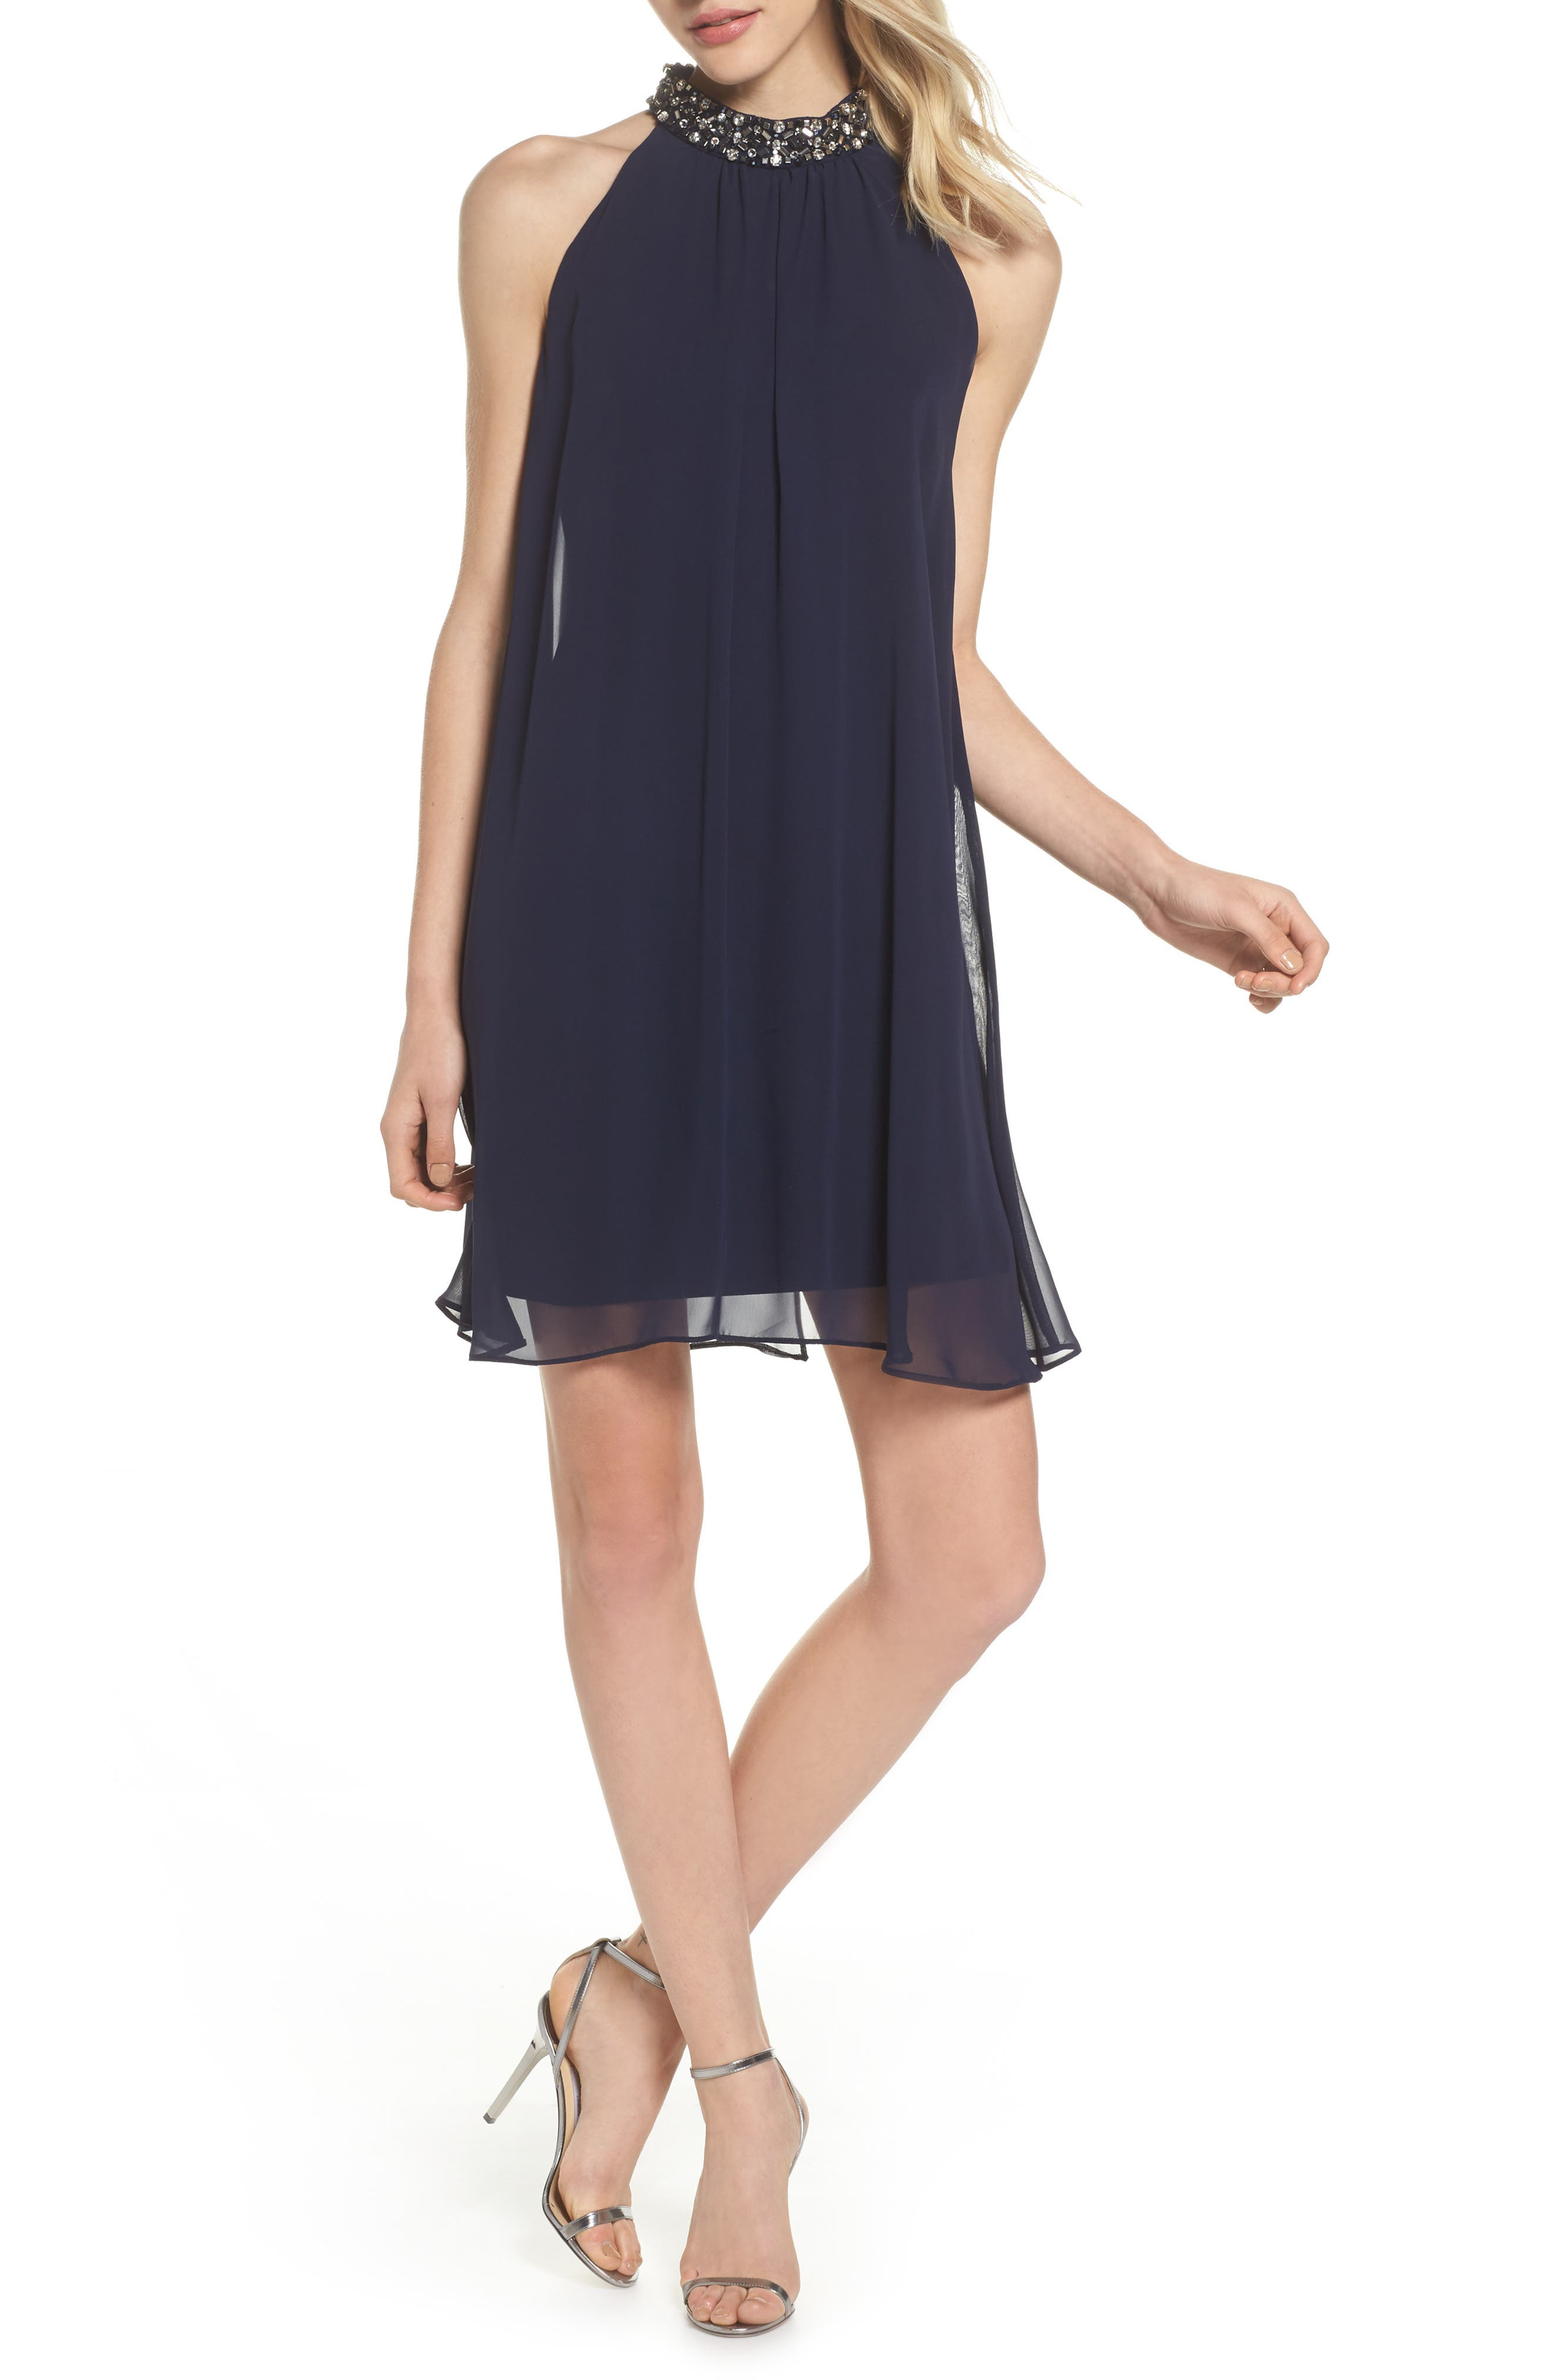 Alternate Image 1 Selected - Vince Camuto Beaded Collar Trapeze Dress